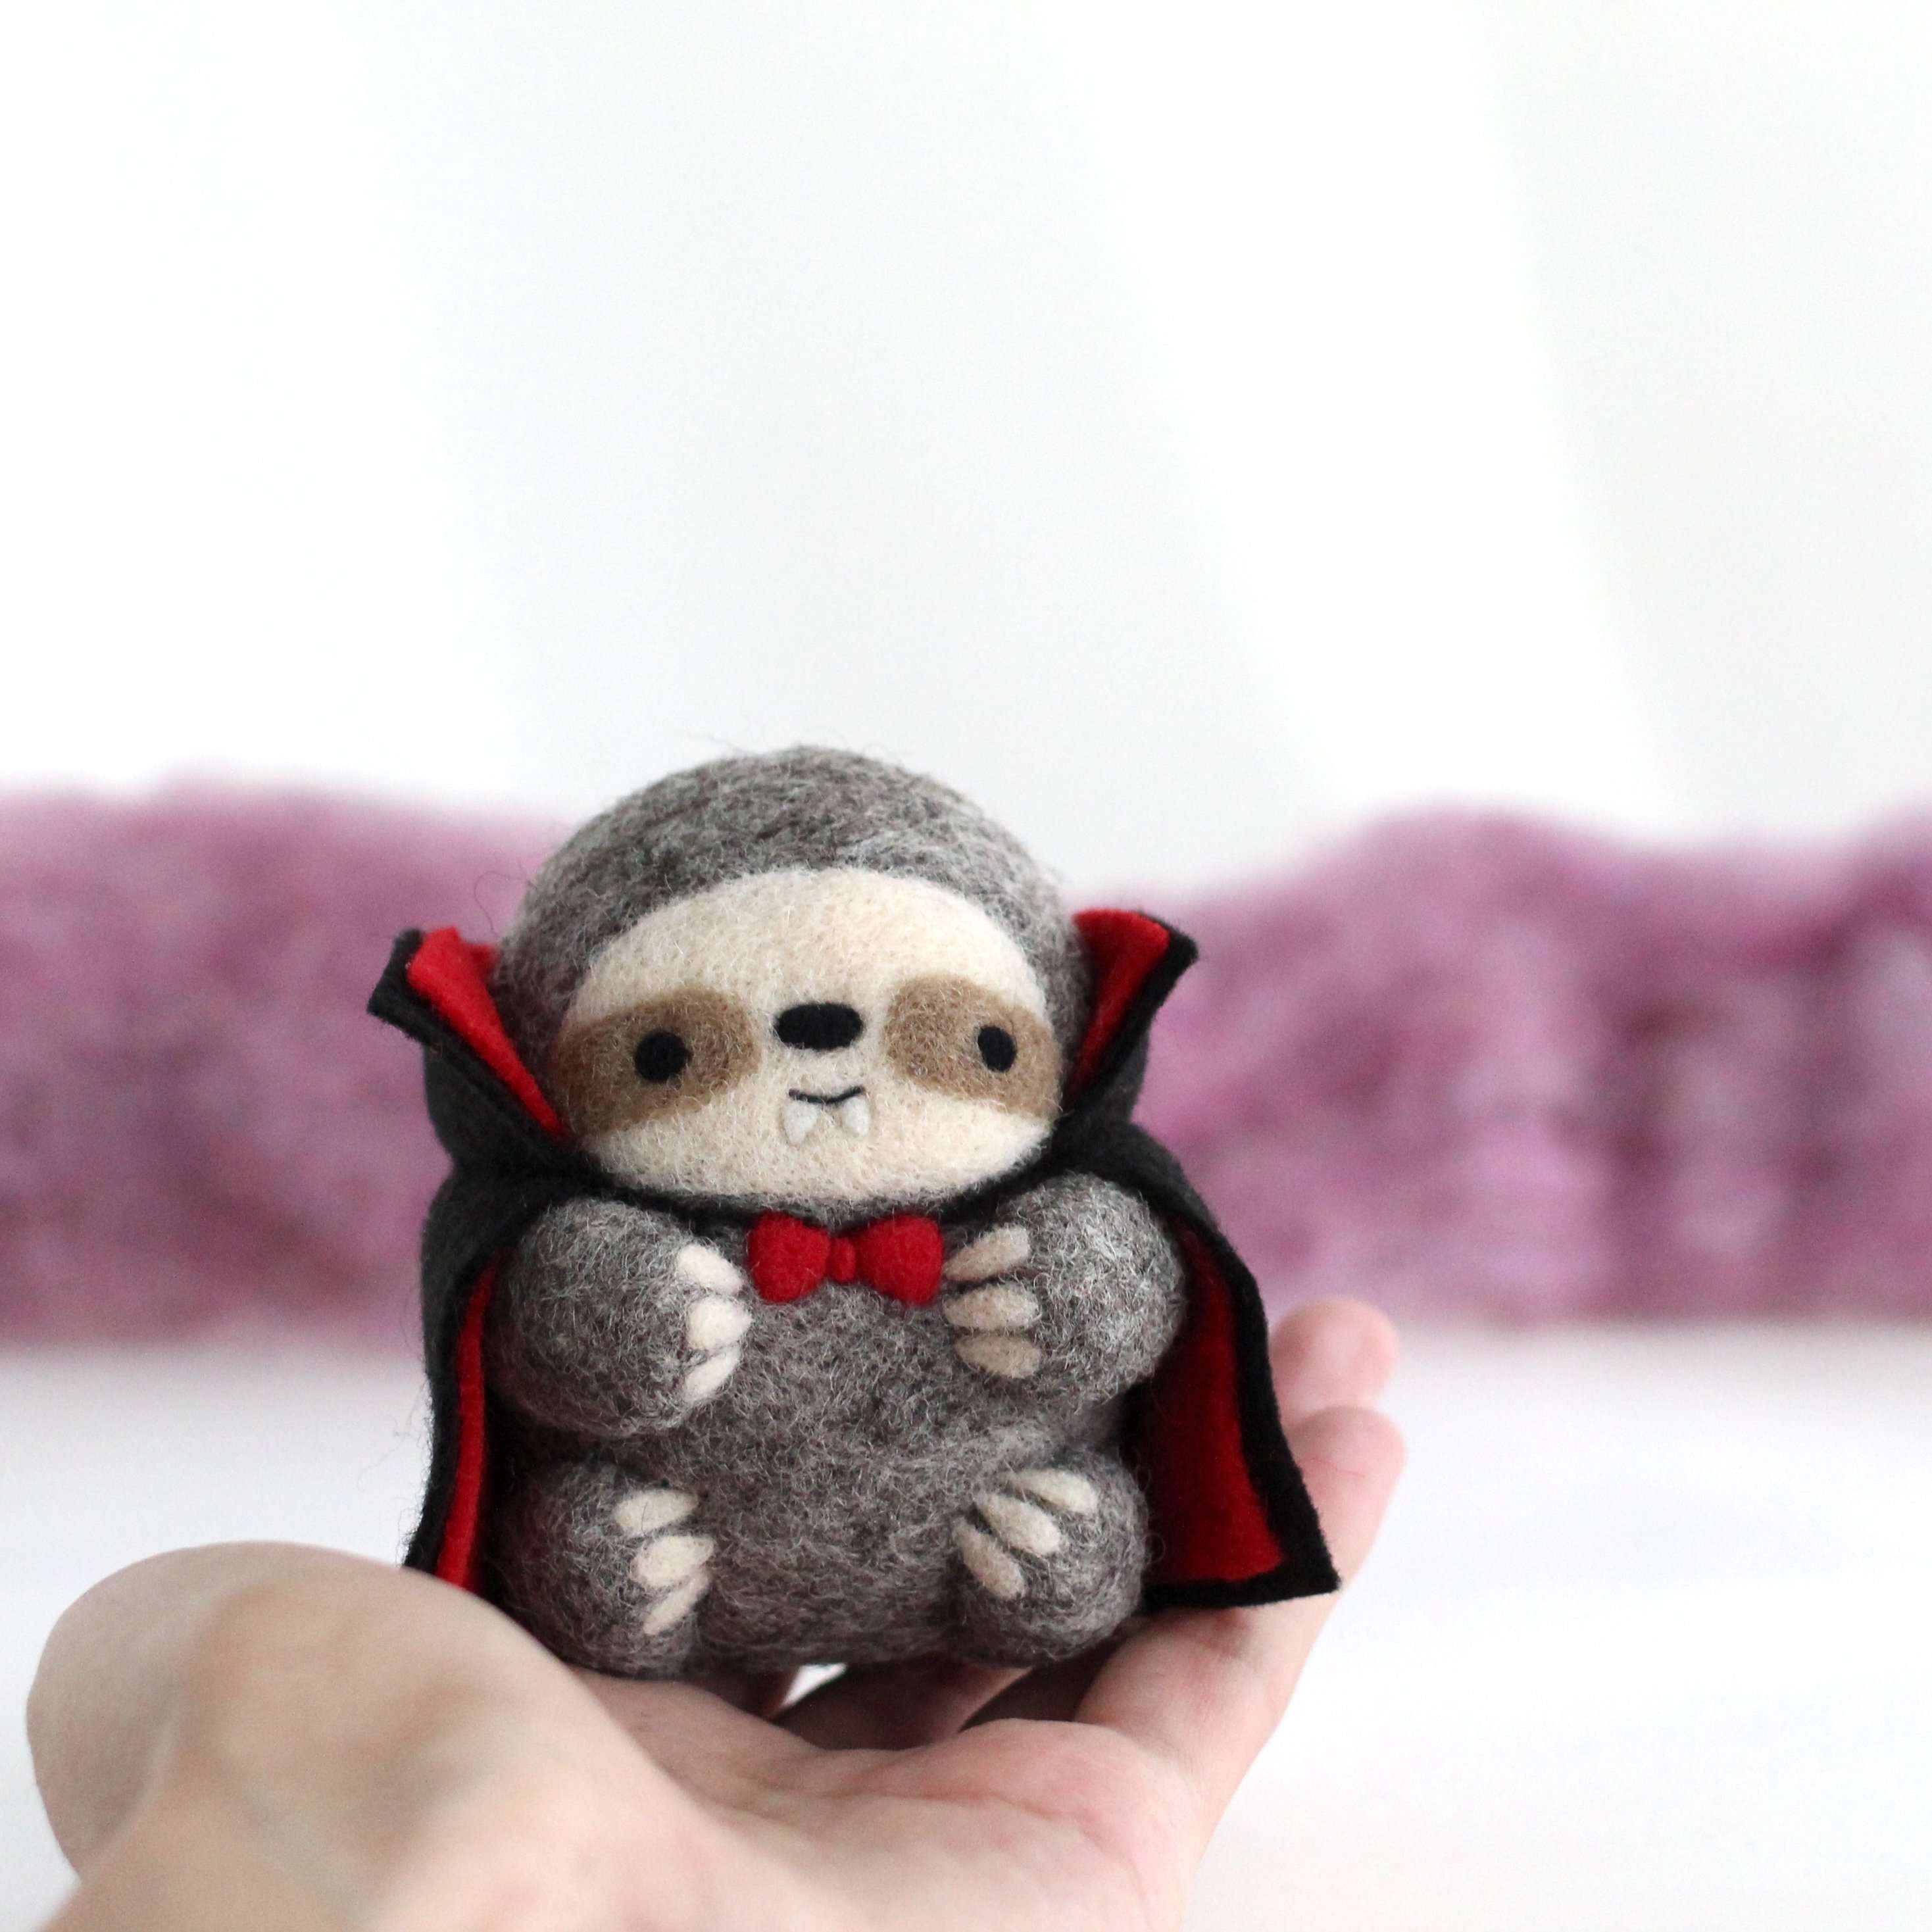 Needle Felted Vampire Sloth by Wild Whimsy Woolies